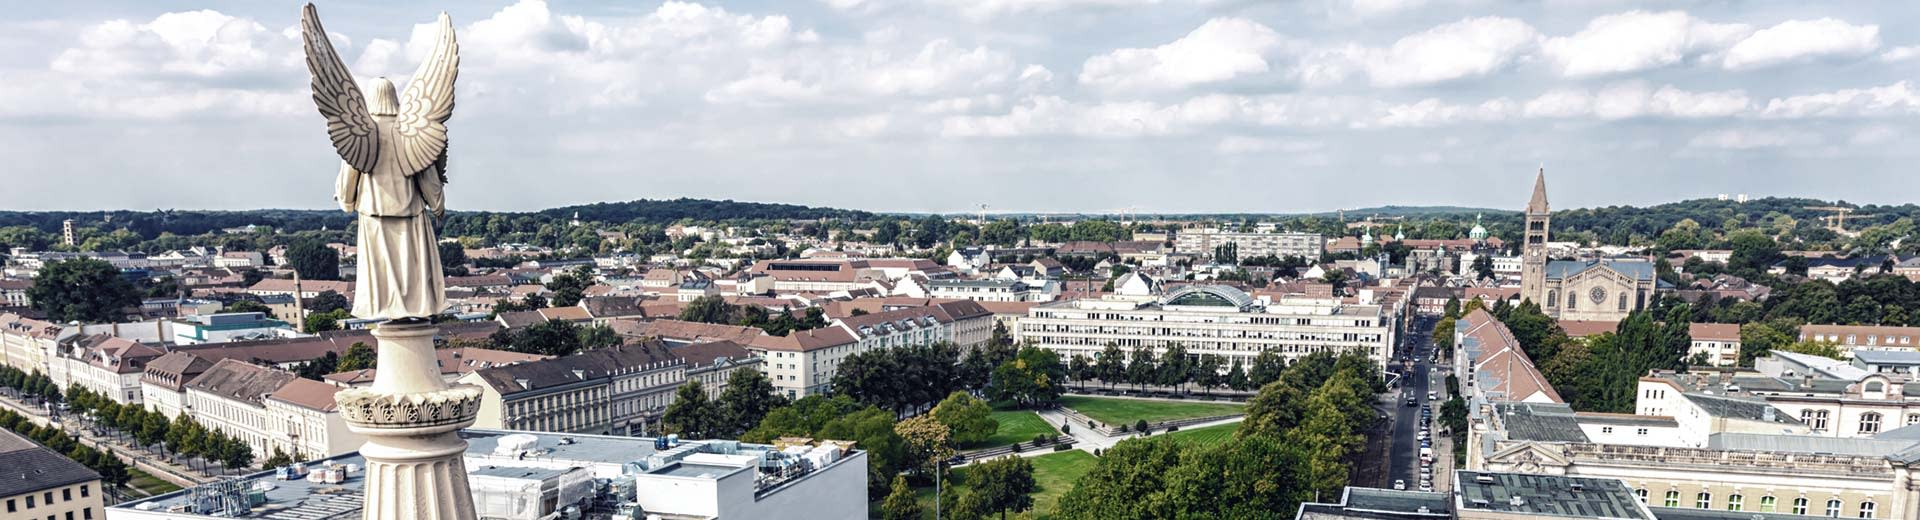 The beautiful east German town of Potsdam, with low-rise buildigns and plenty of green parks